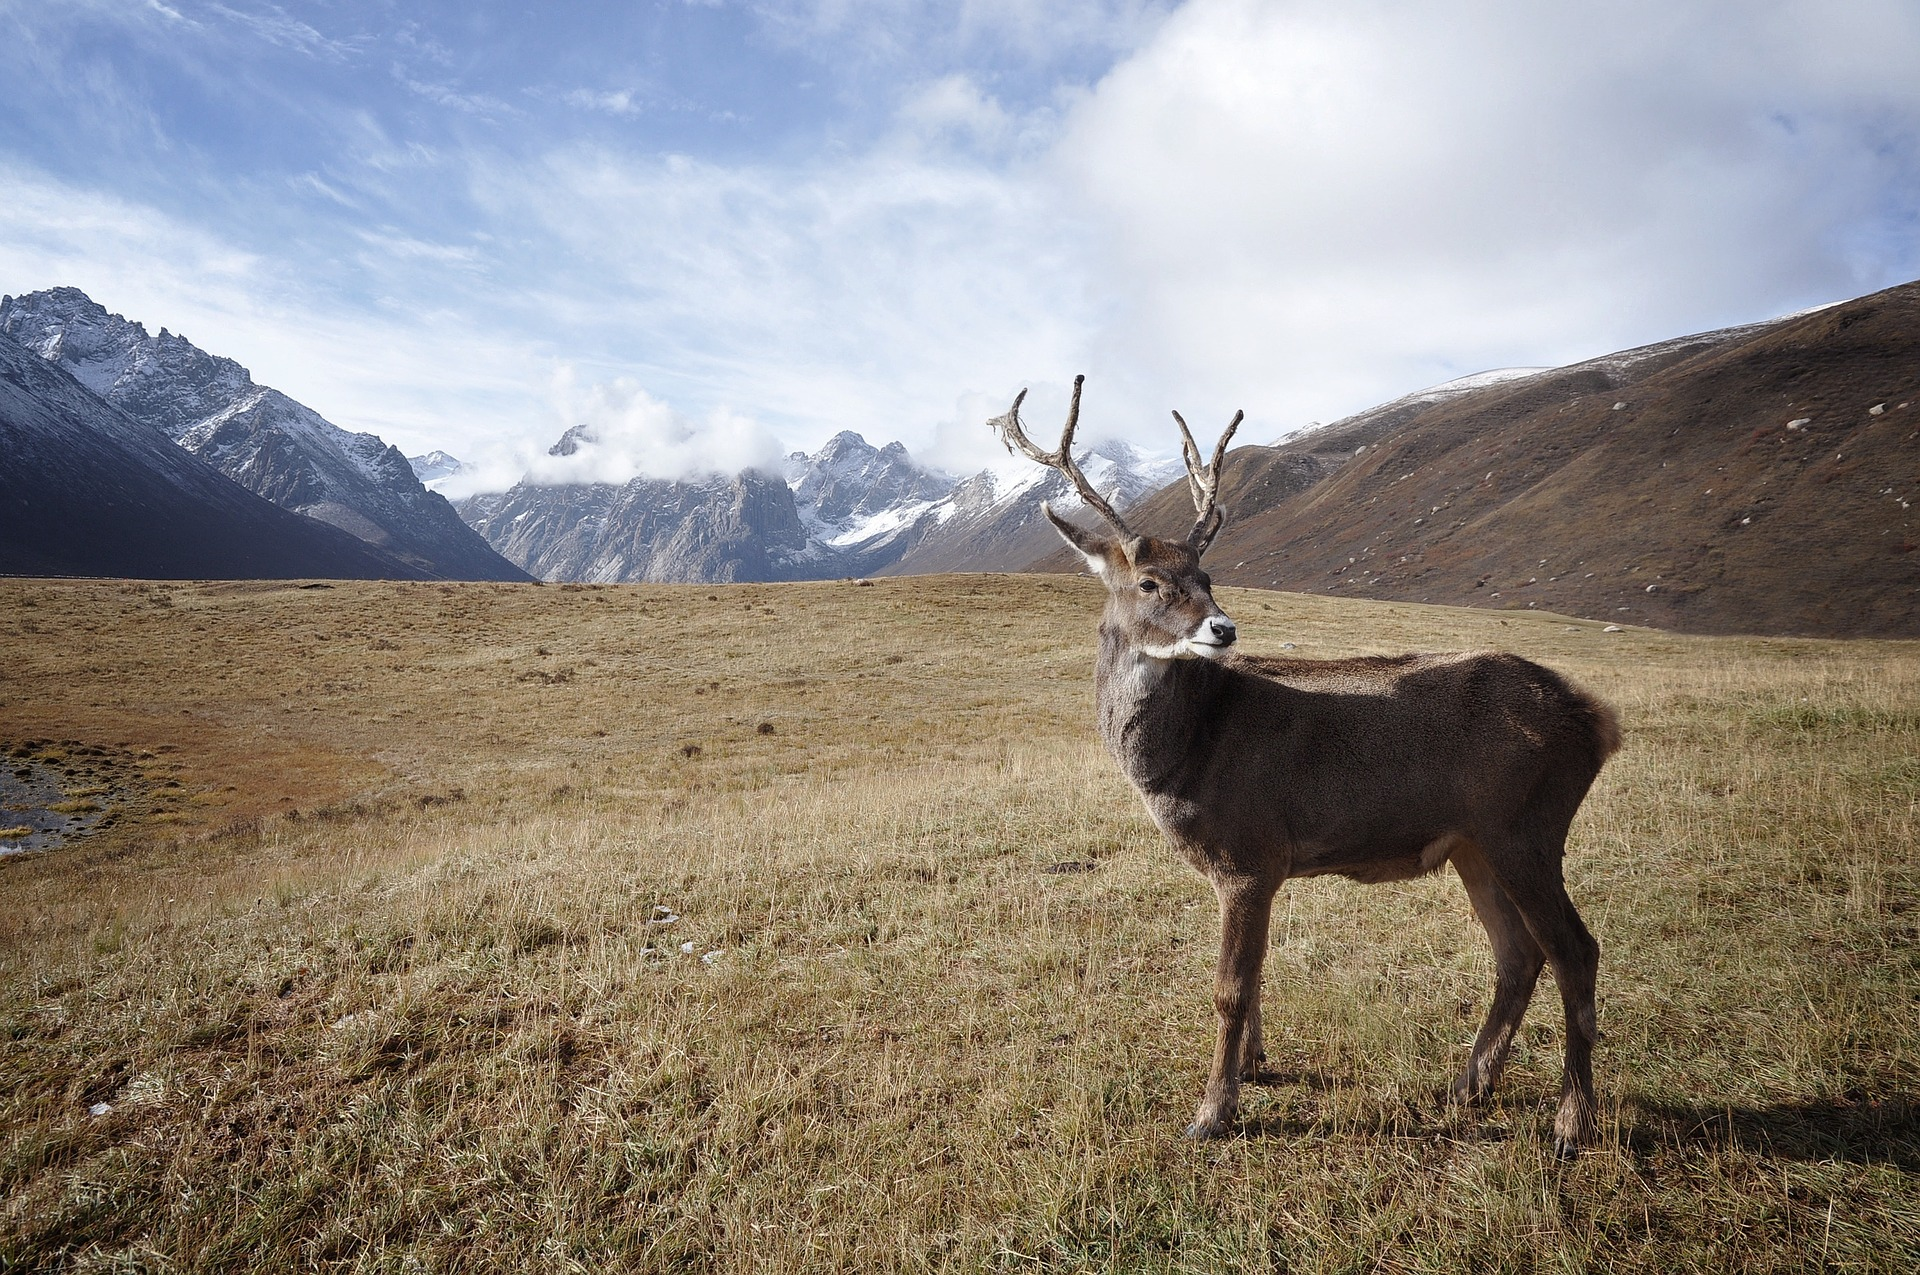 Researchers matchmaking: reindeer husbandry in focus